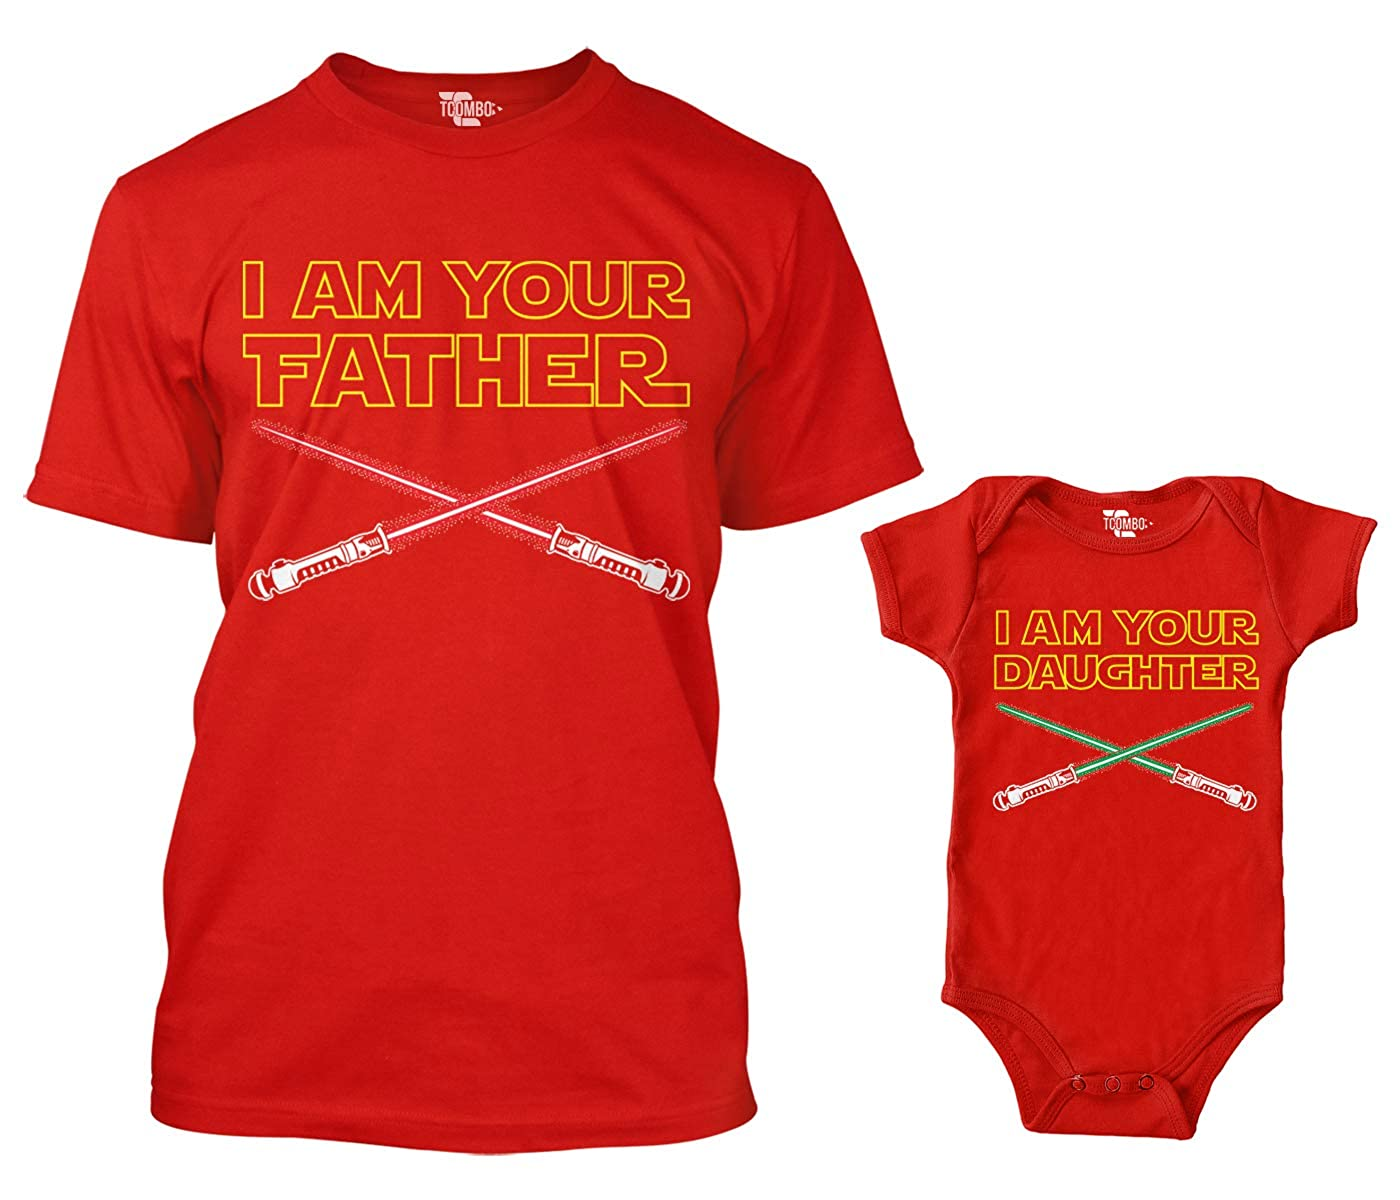 abf59898 Amazon.com: I Am Your Father/I Am Your Son Matching Bodysuit & Men's T-Shirt:  Clothing